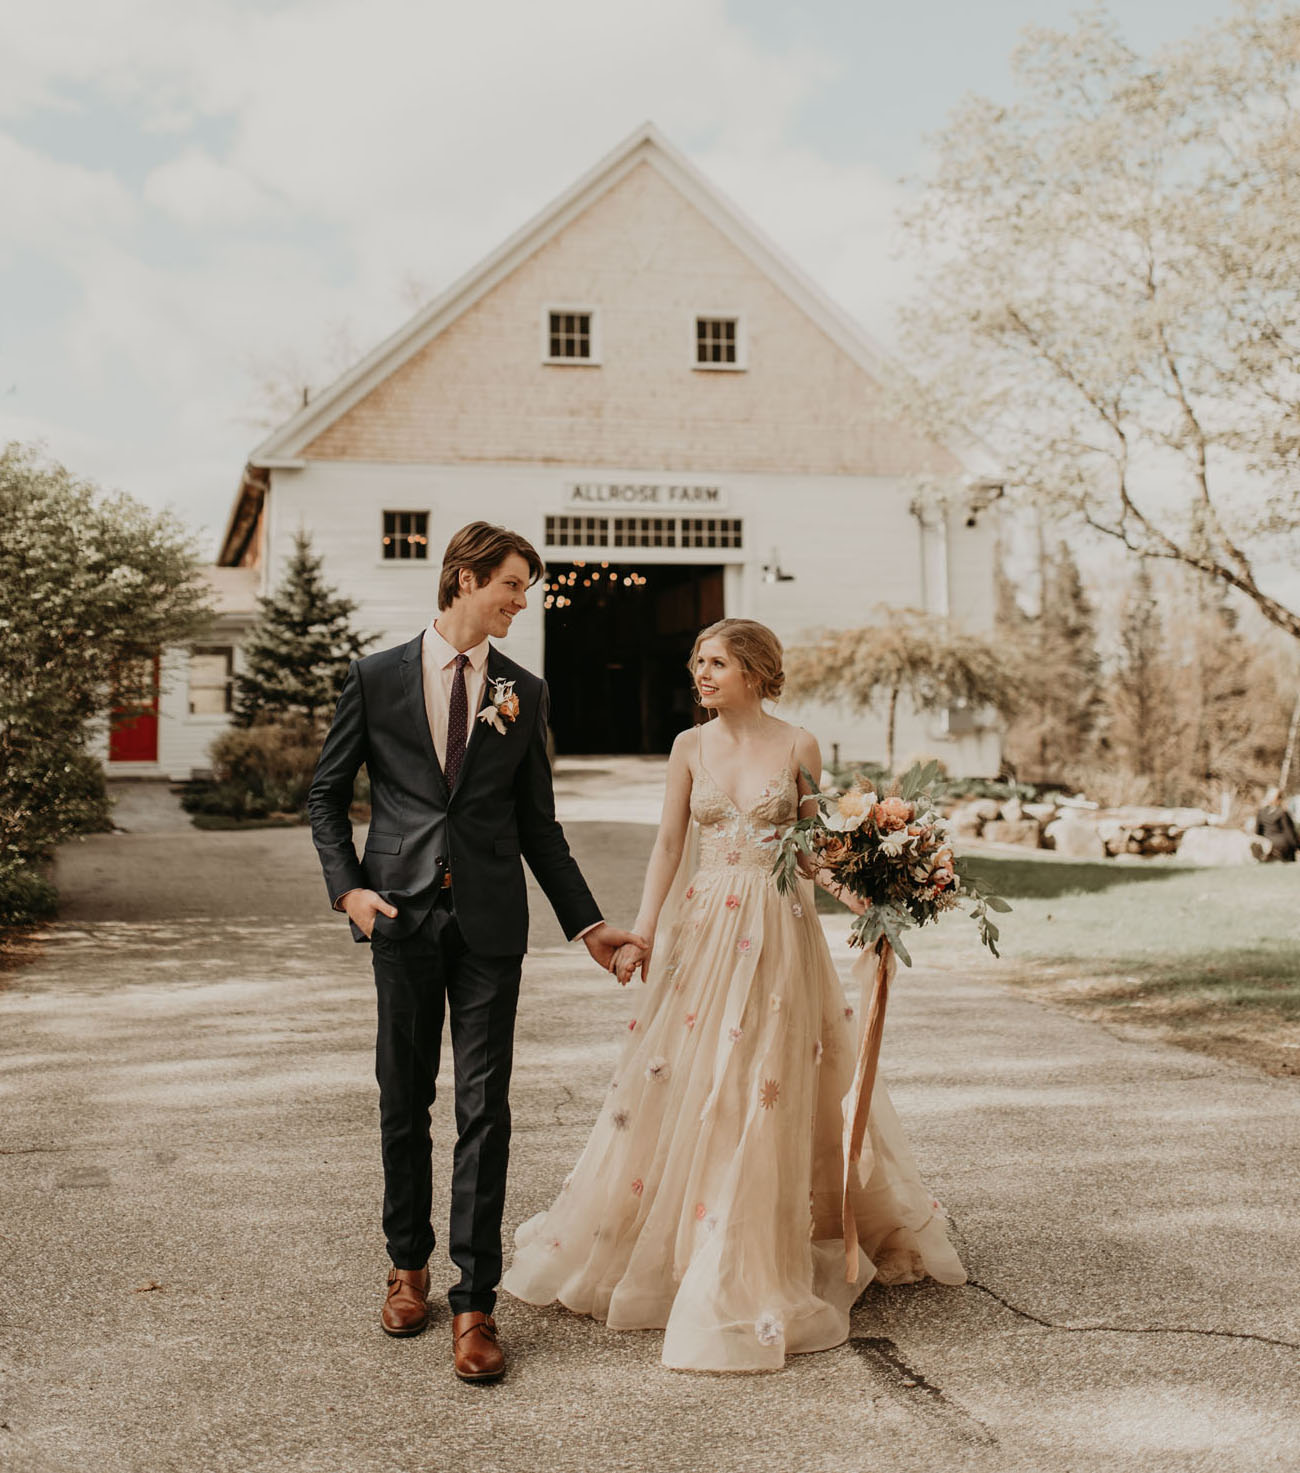 This wedding shoot was super romantic, moody and chic, with botanical and floral touches